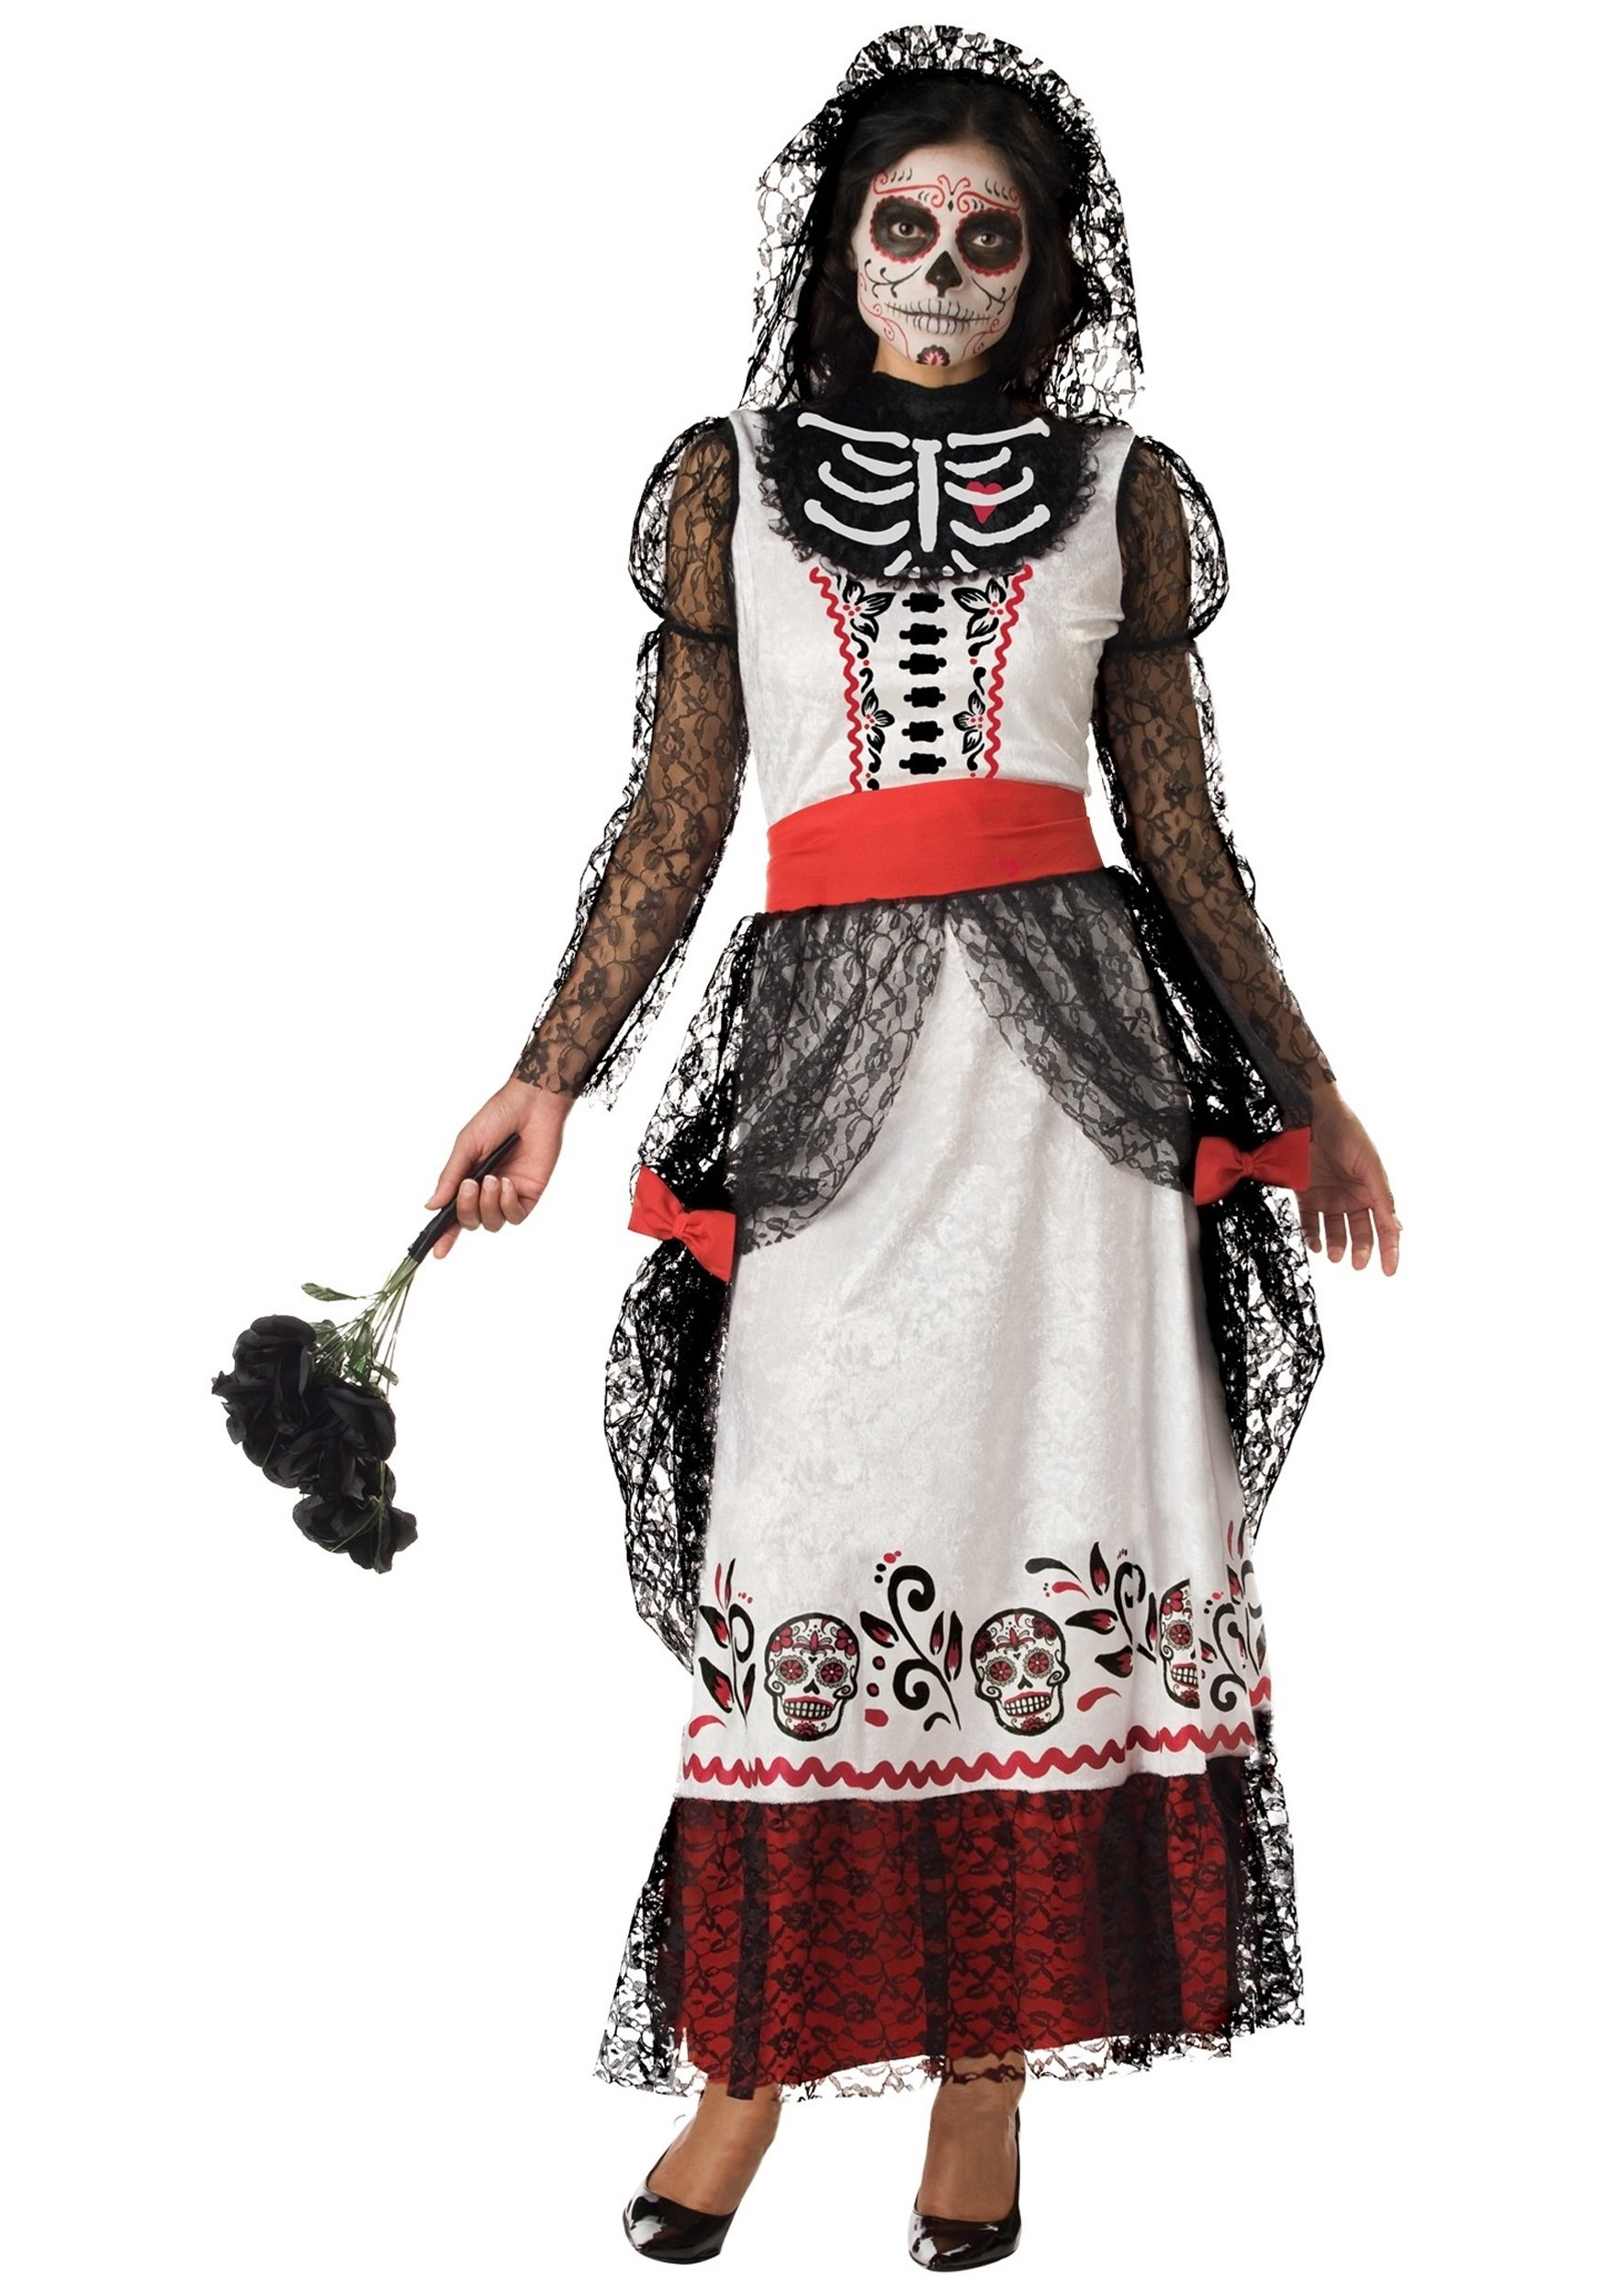 10 Stylish Ideas For Adult Halloween Costumes new and scary halloween costume ideas for kids loversiq 1 2020